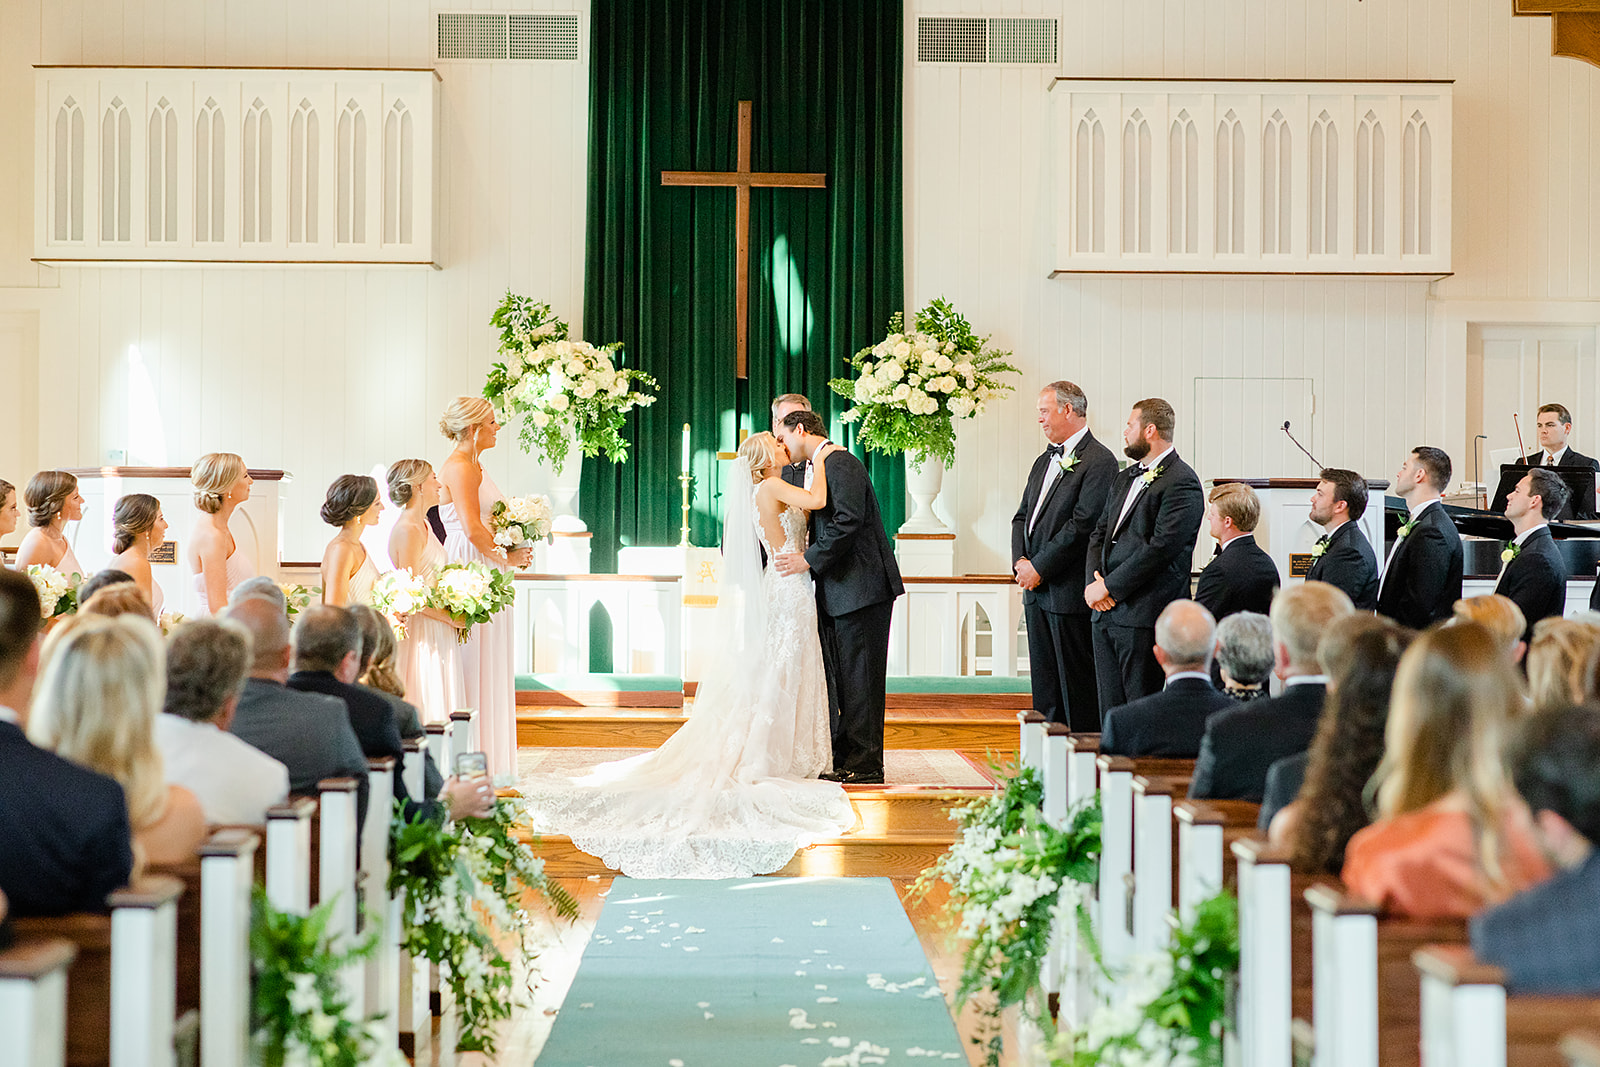 Blush-Black-Tie-Wedding-at-the-Grand-Hotel-in-Point-Clear-Alabama-Anna-Filly-Photography-Cross-Wedding-Ceremony-49.jpg